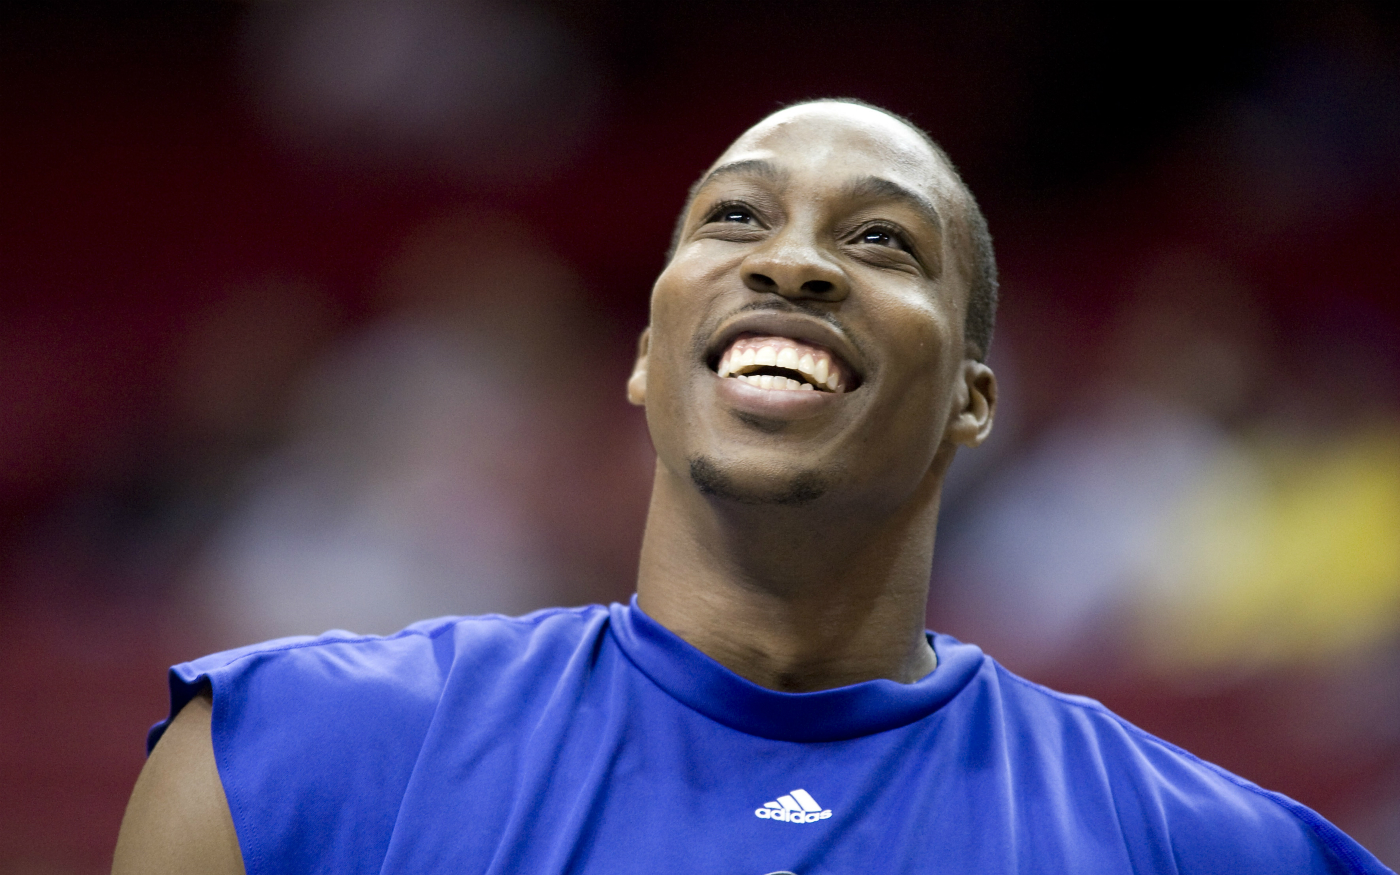 Dwight Howard pense mériter le Hall of Fame